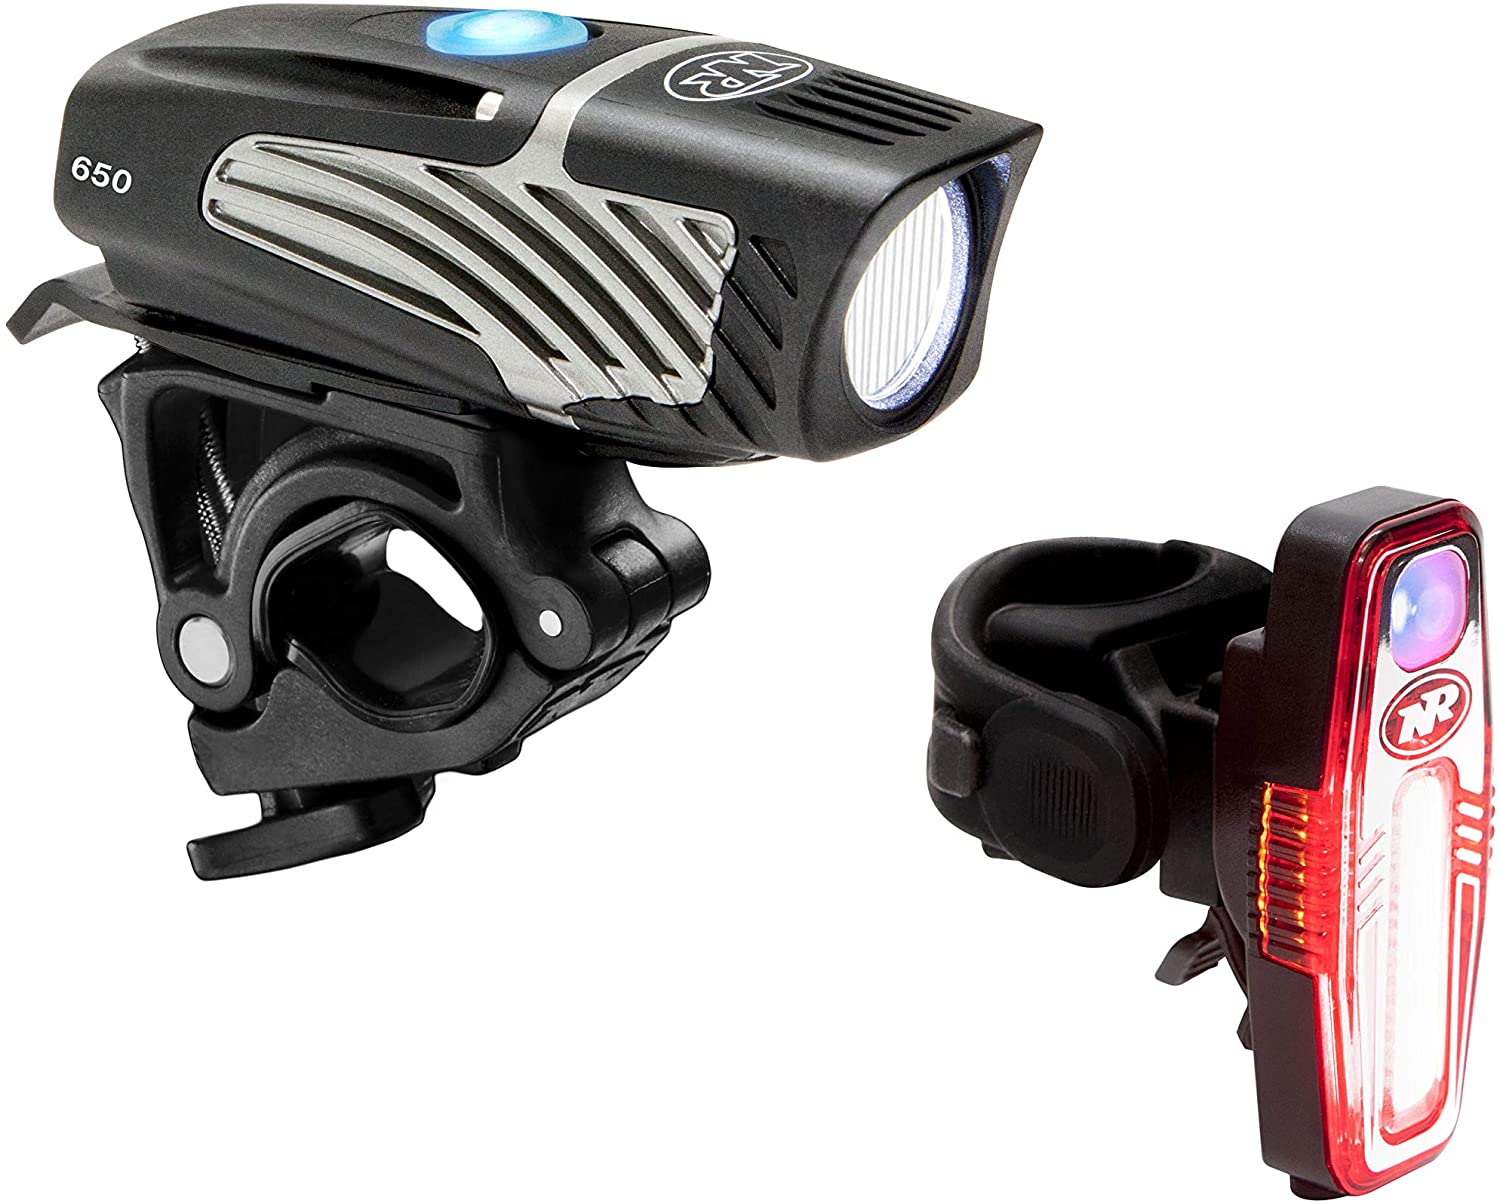 NiteRider Lumina Micro 650 Front Sabre Rear Outlet sale feature Light 110 Bike Daily bargain sale